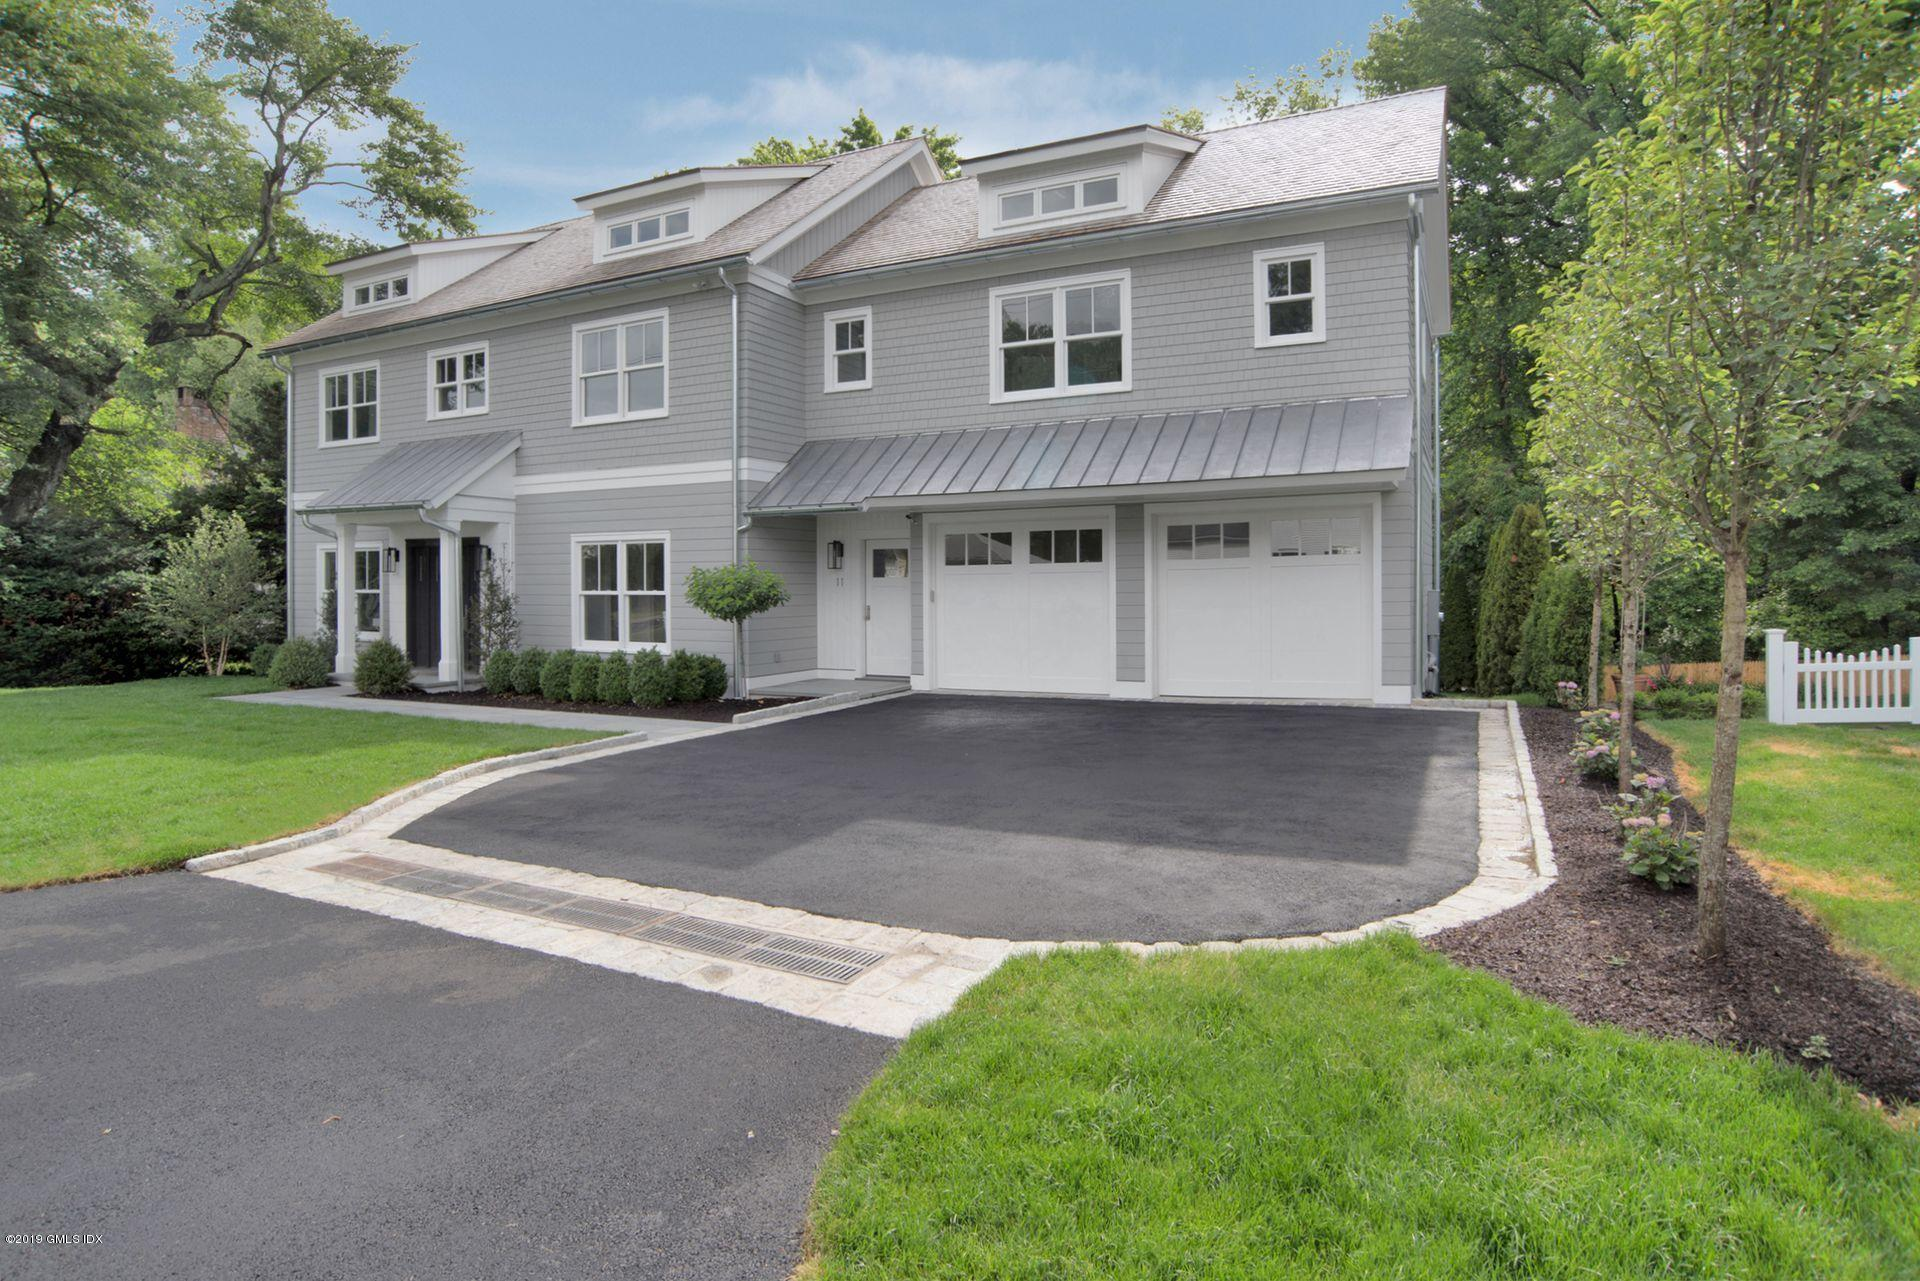 11 Dialstone Lane, Riverside, CT 06878